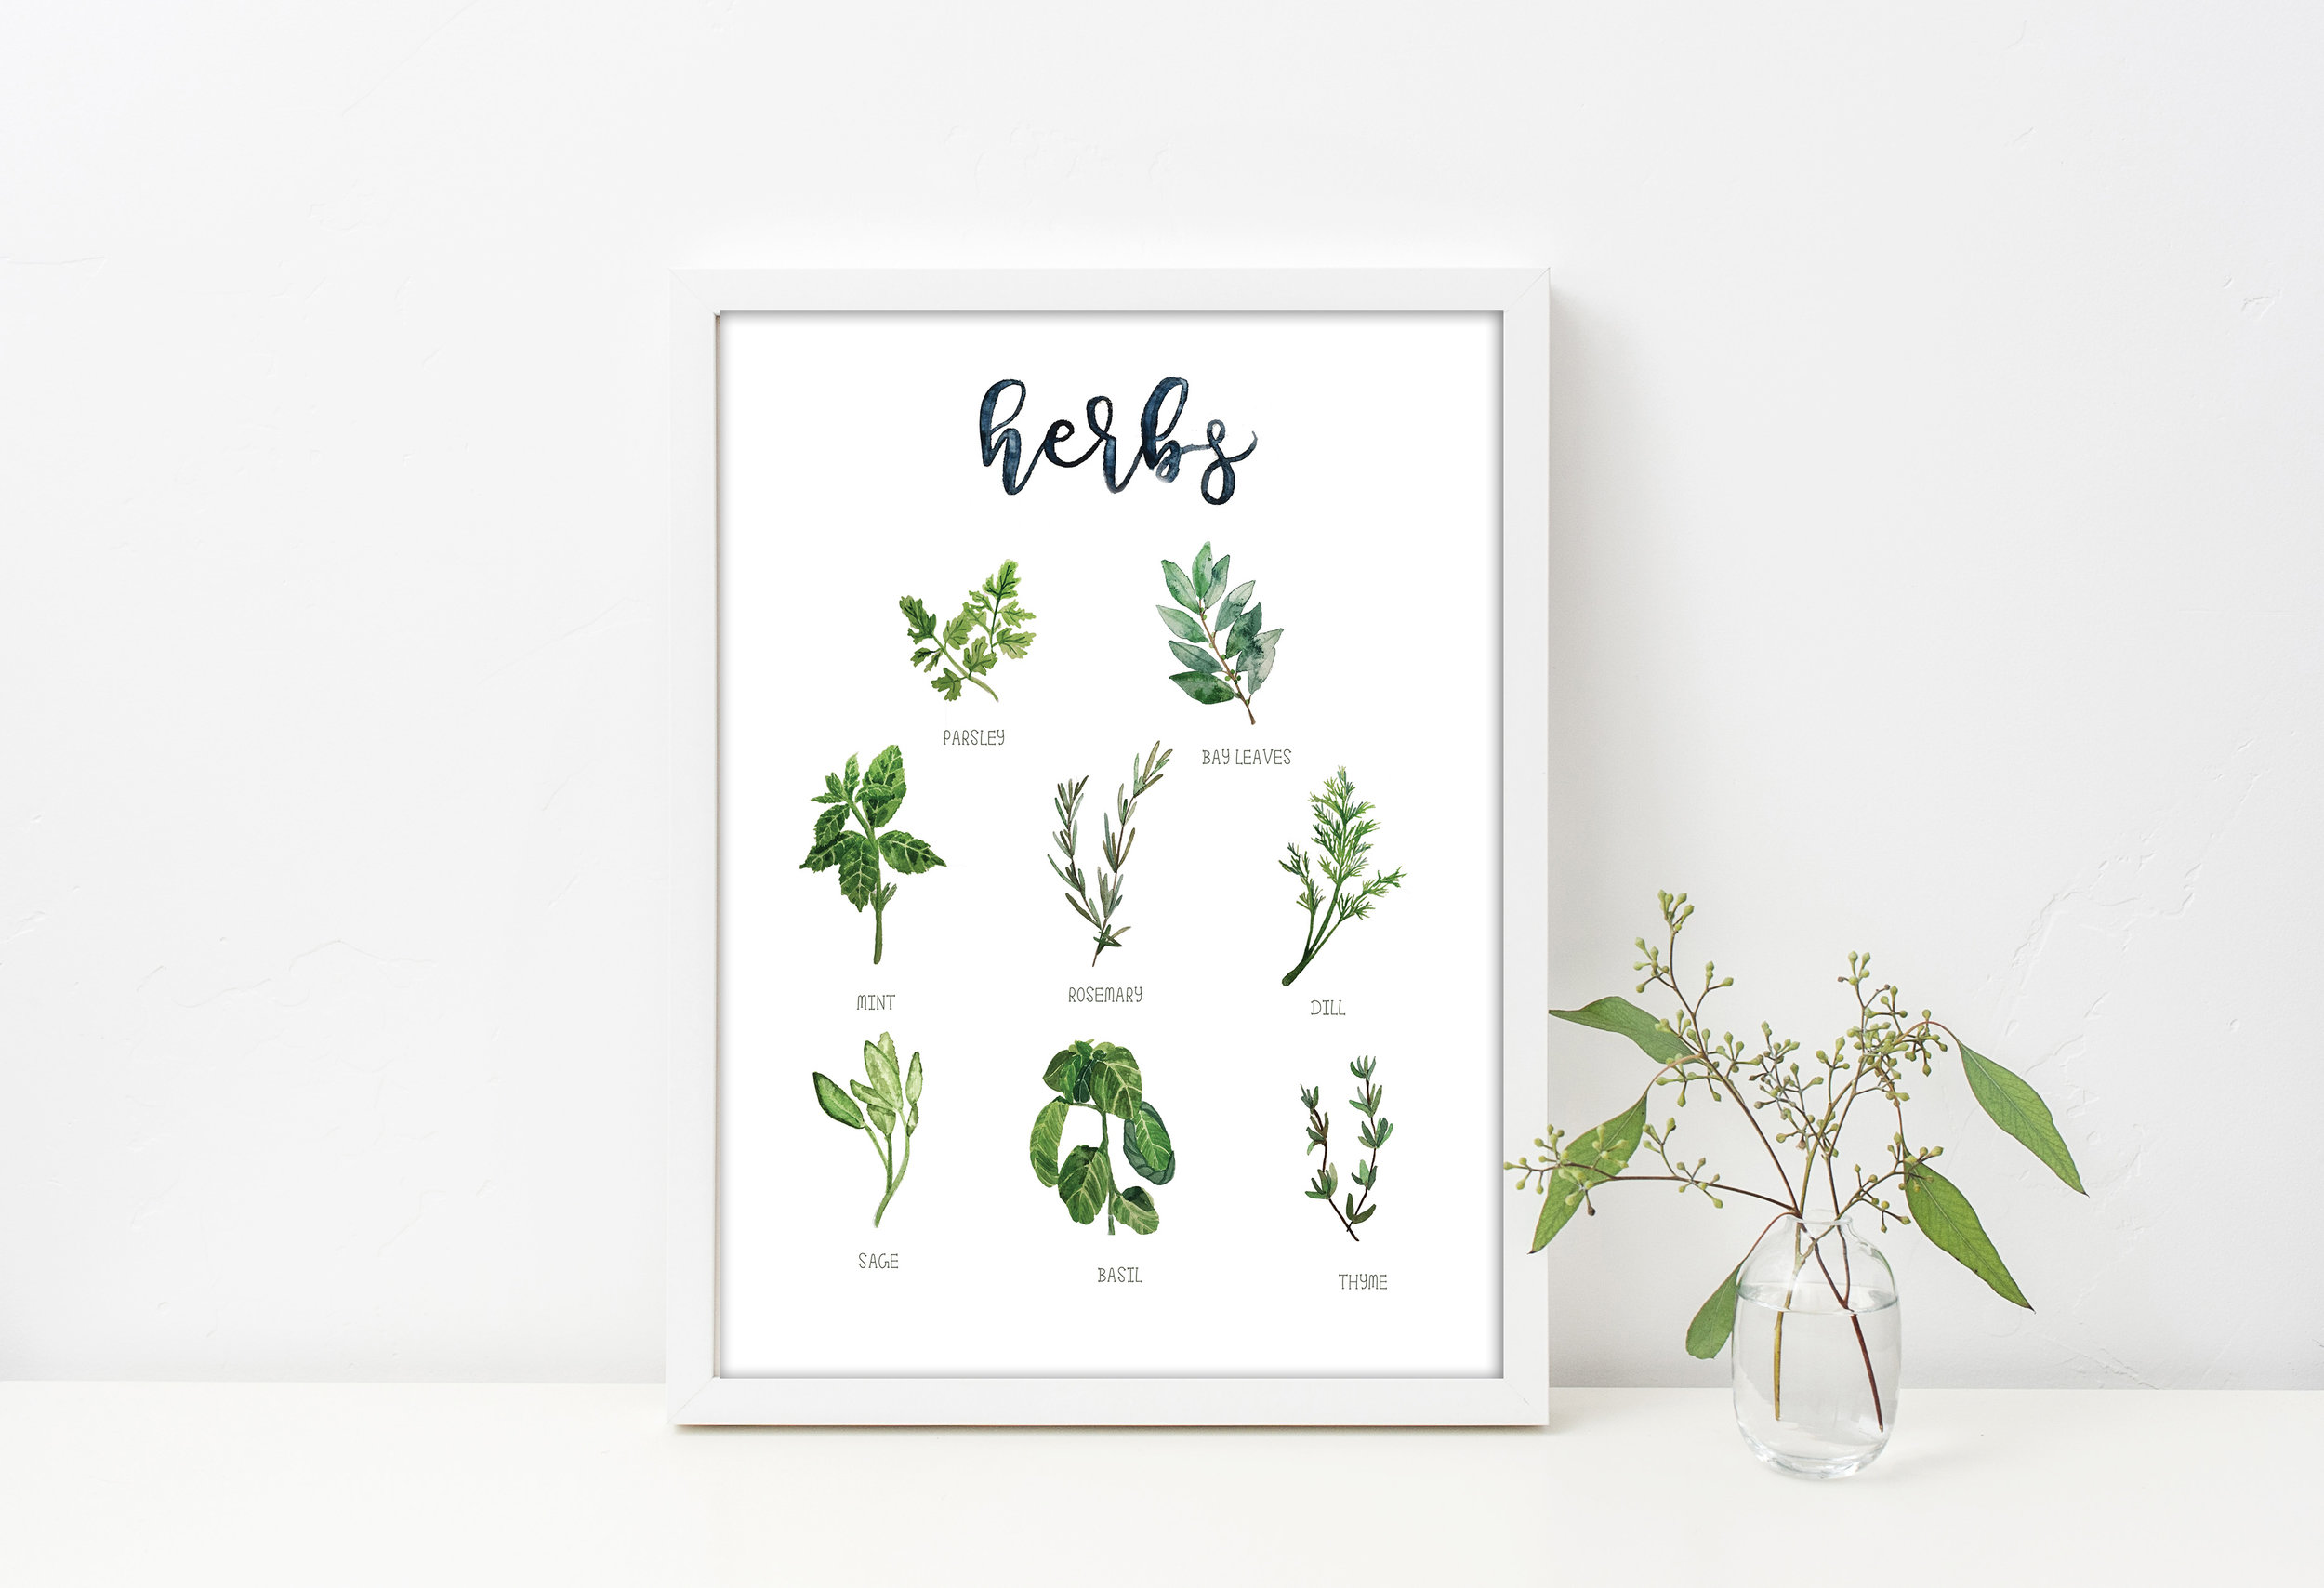 The Herb Collection - Parsley, Bay Leaves, Mint, Rosemary, Dill, Sage, Basil, Thyme, and the full collection